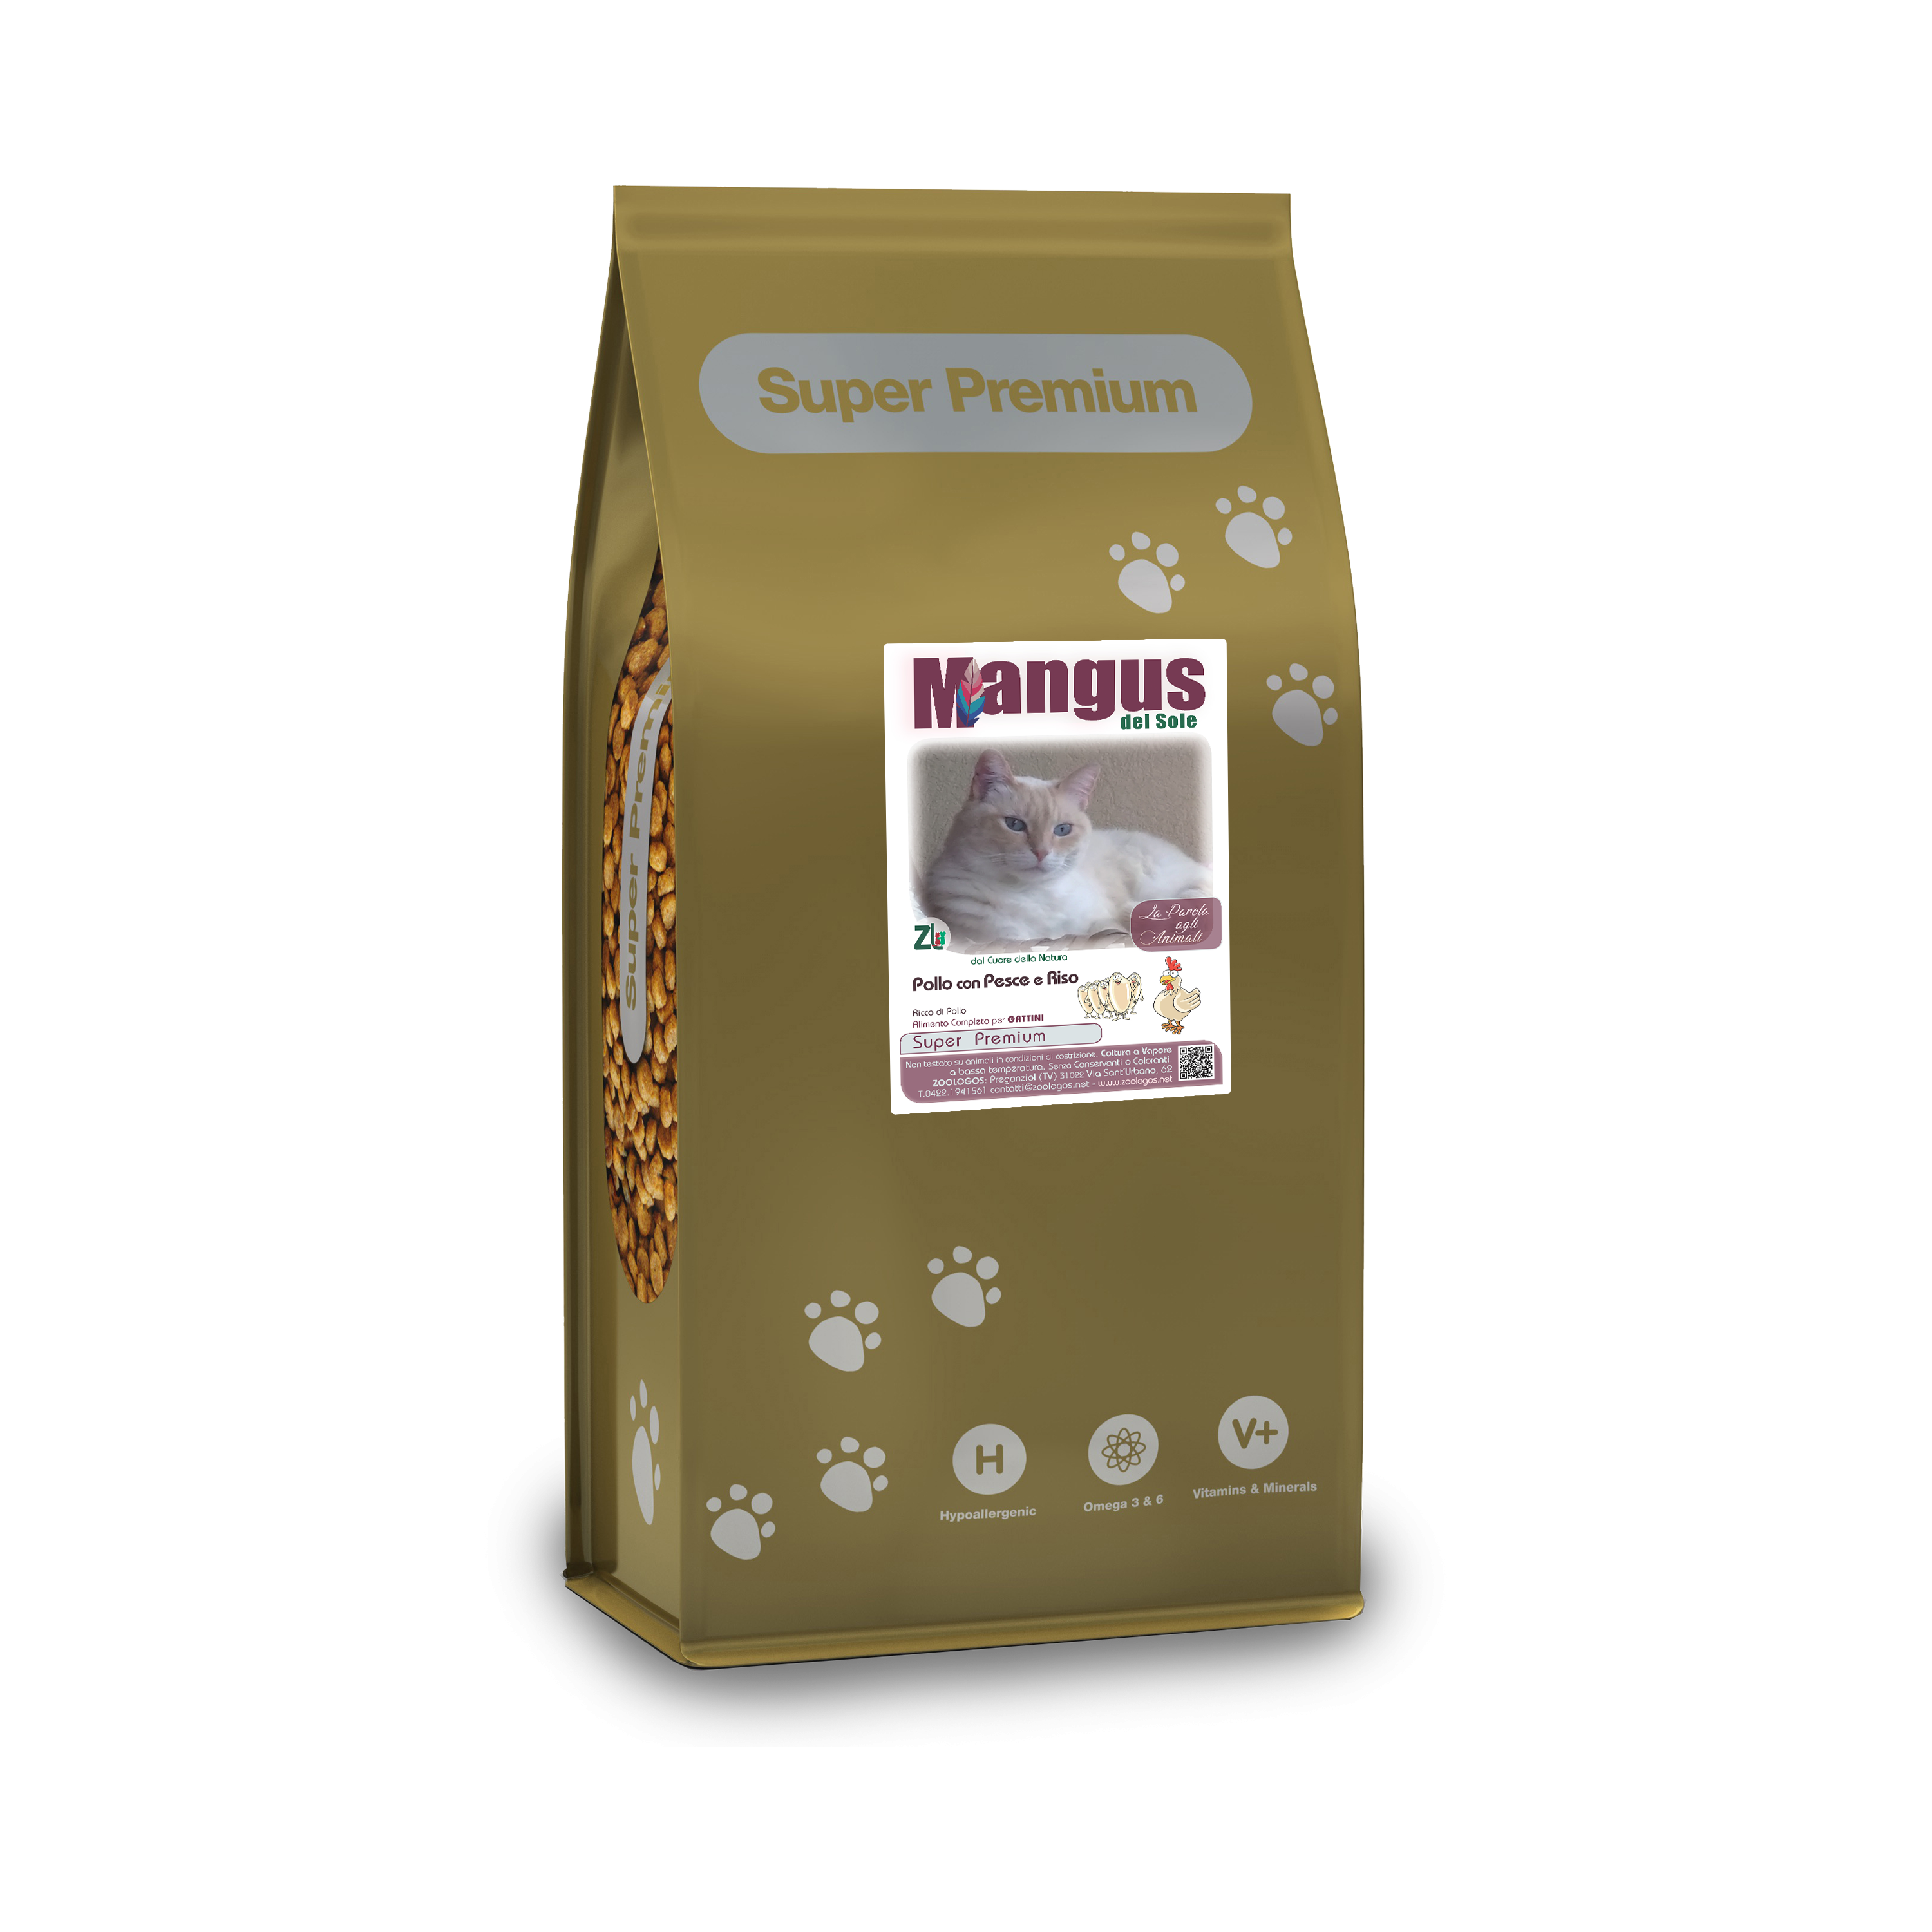 Mangus del Sole - Cat Superpremium Kitten Pollo e Riso. 7.5kg